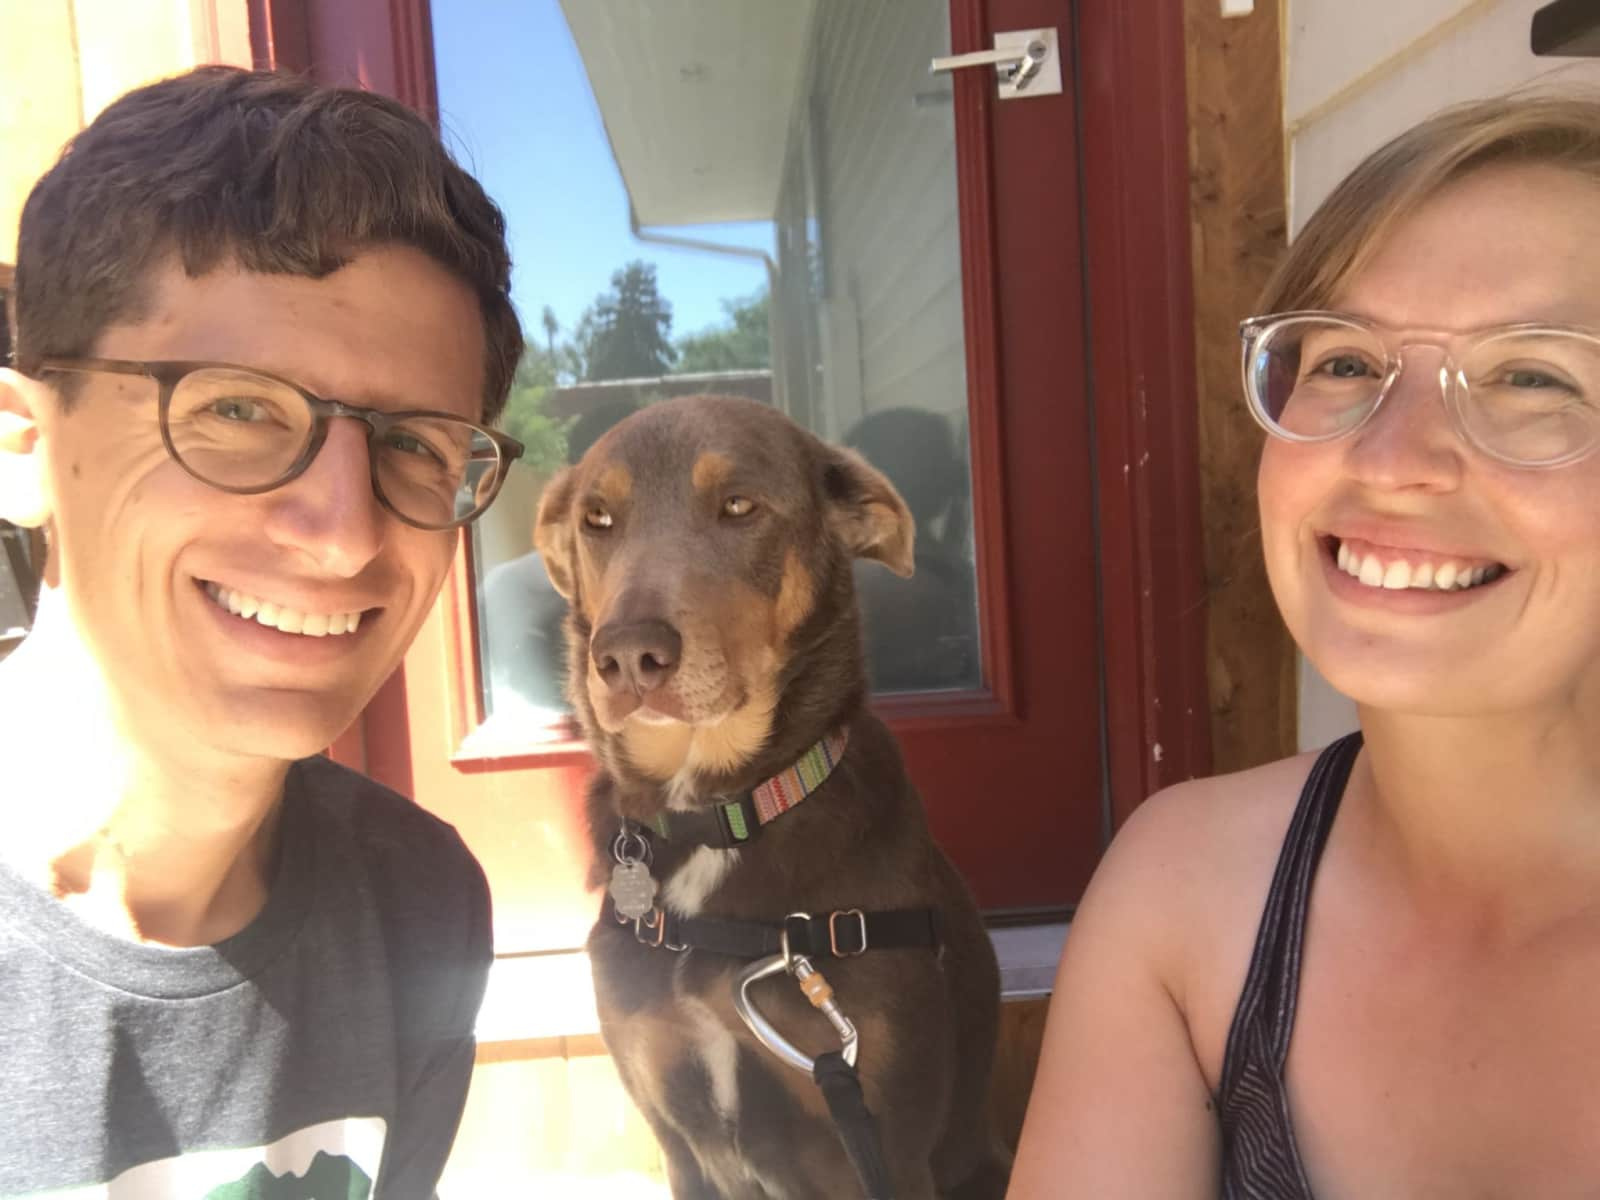 Ben and rachel & Rachel from Denver, Colorado, United States